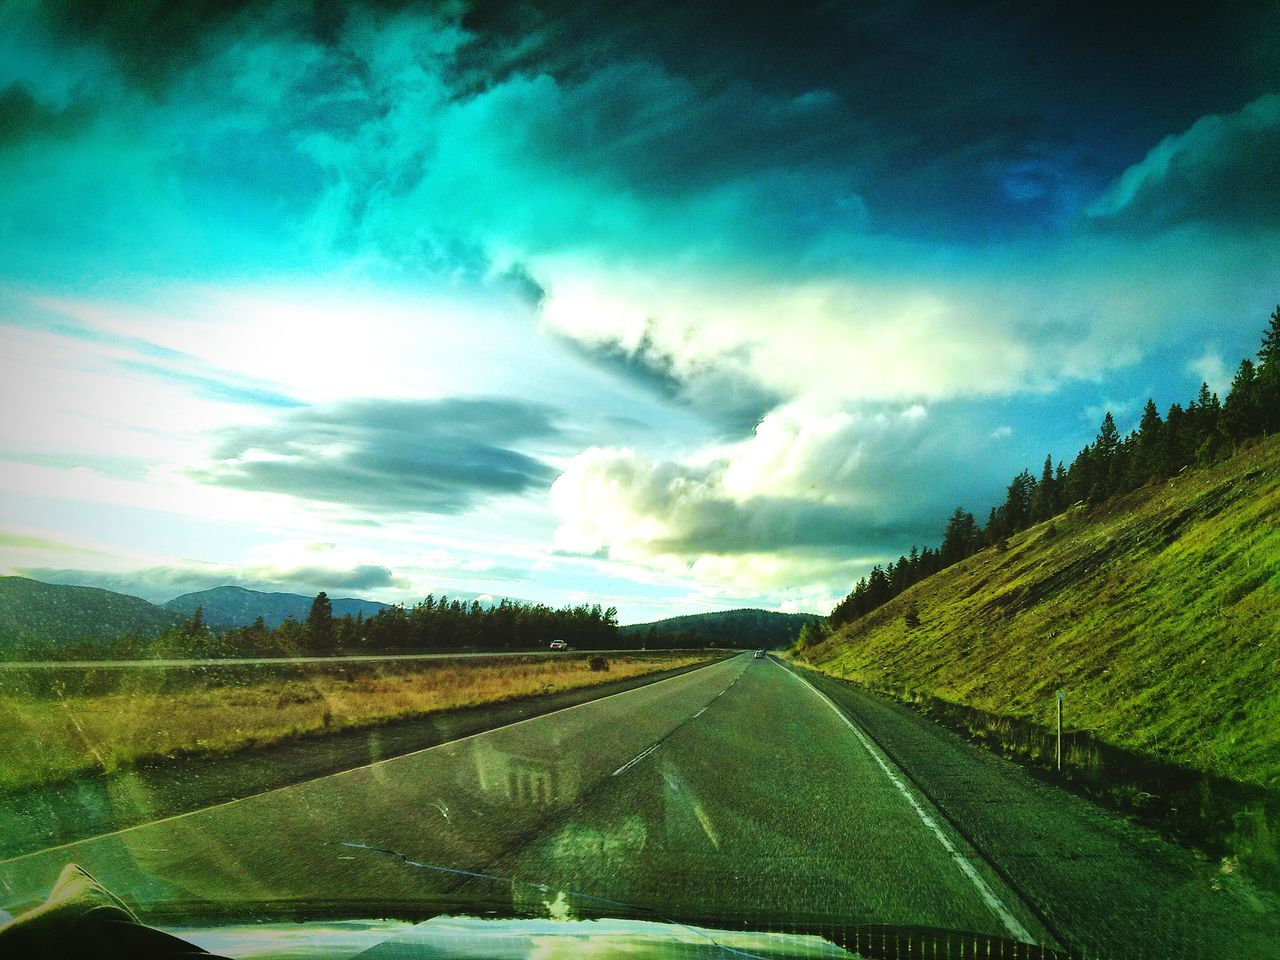 Vignette Open Road Empty Road Mountains Trees Blue Green Reflection Perfect Day On The Move On The Way Solotraveler Solo Perfection Lovely Drive Home Lovely Landscape Crisp Sunshine